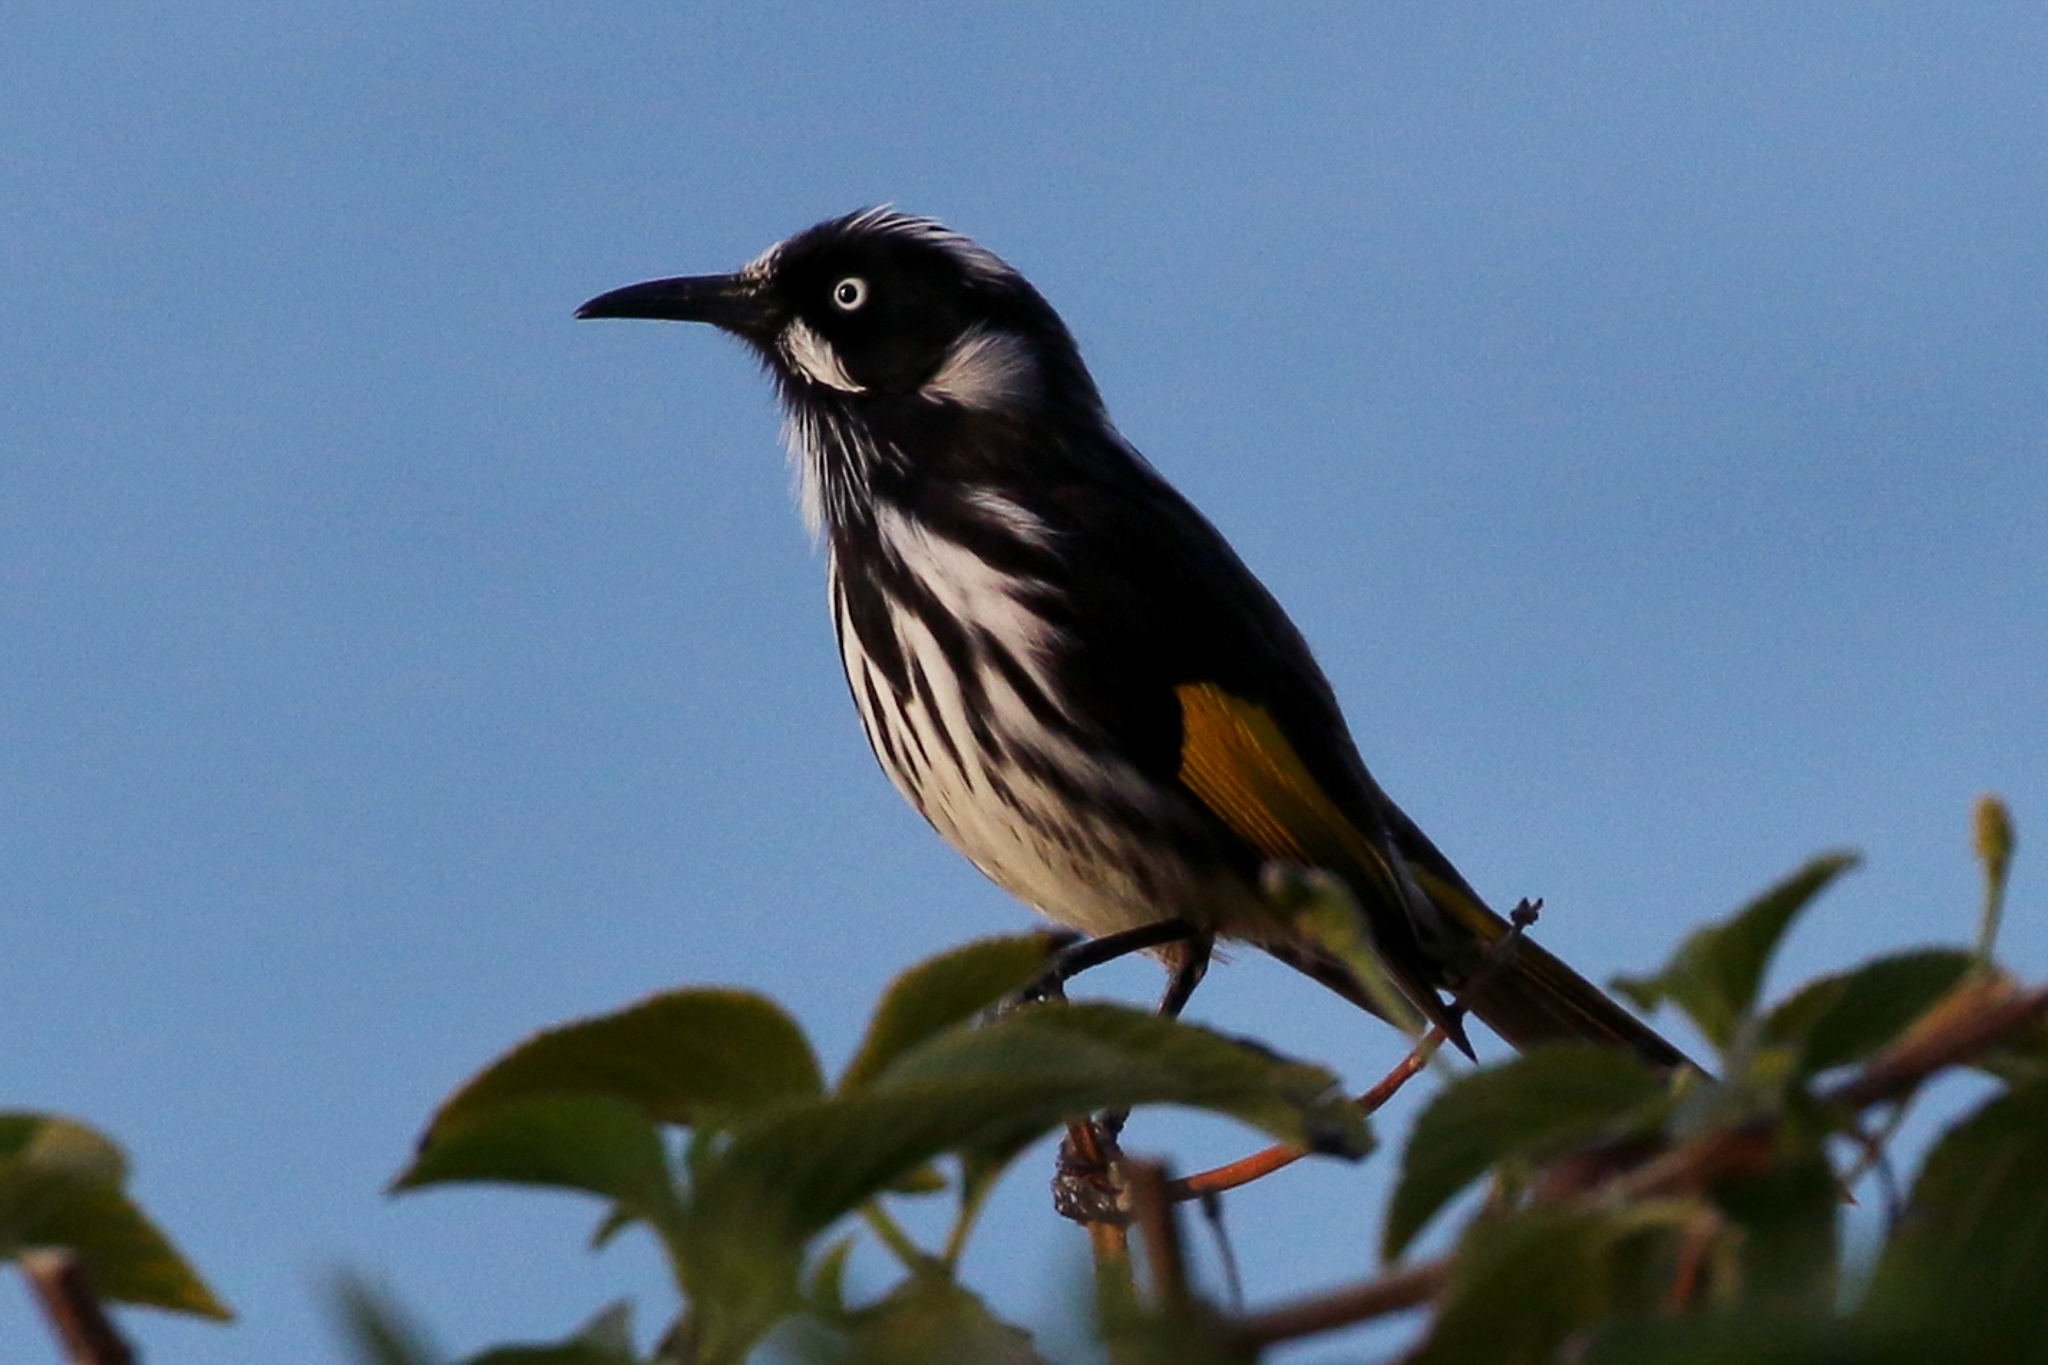 The New Holland Honeyeater is one of the most common Honeyeaters, here seen feeding on nectar from flowering coastal shrub.